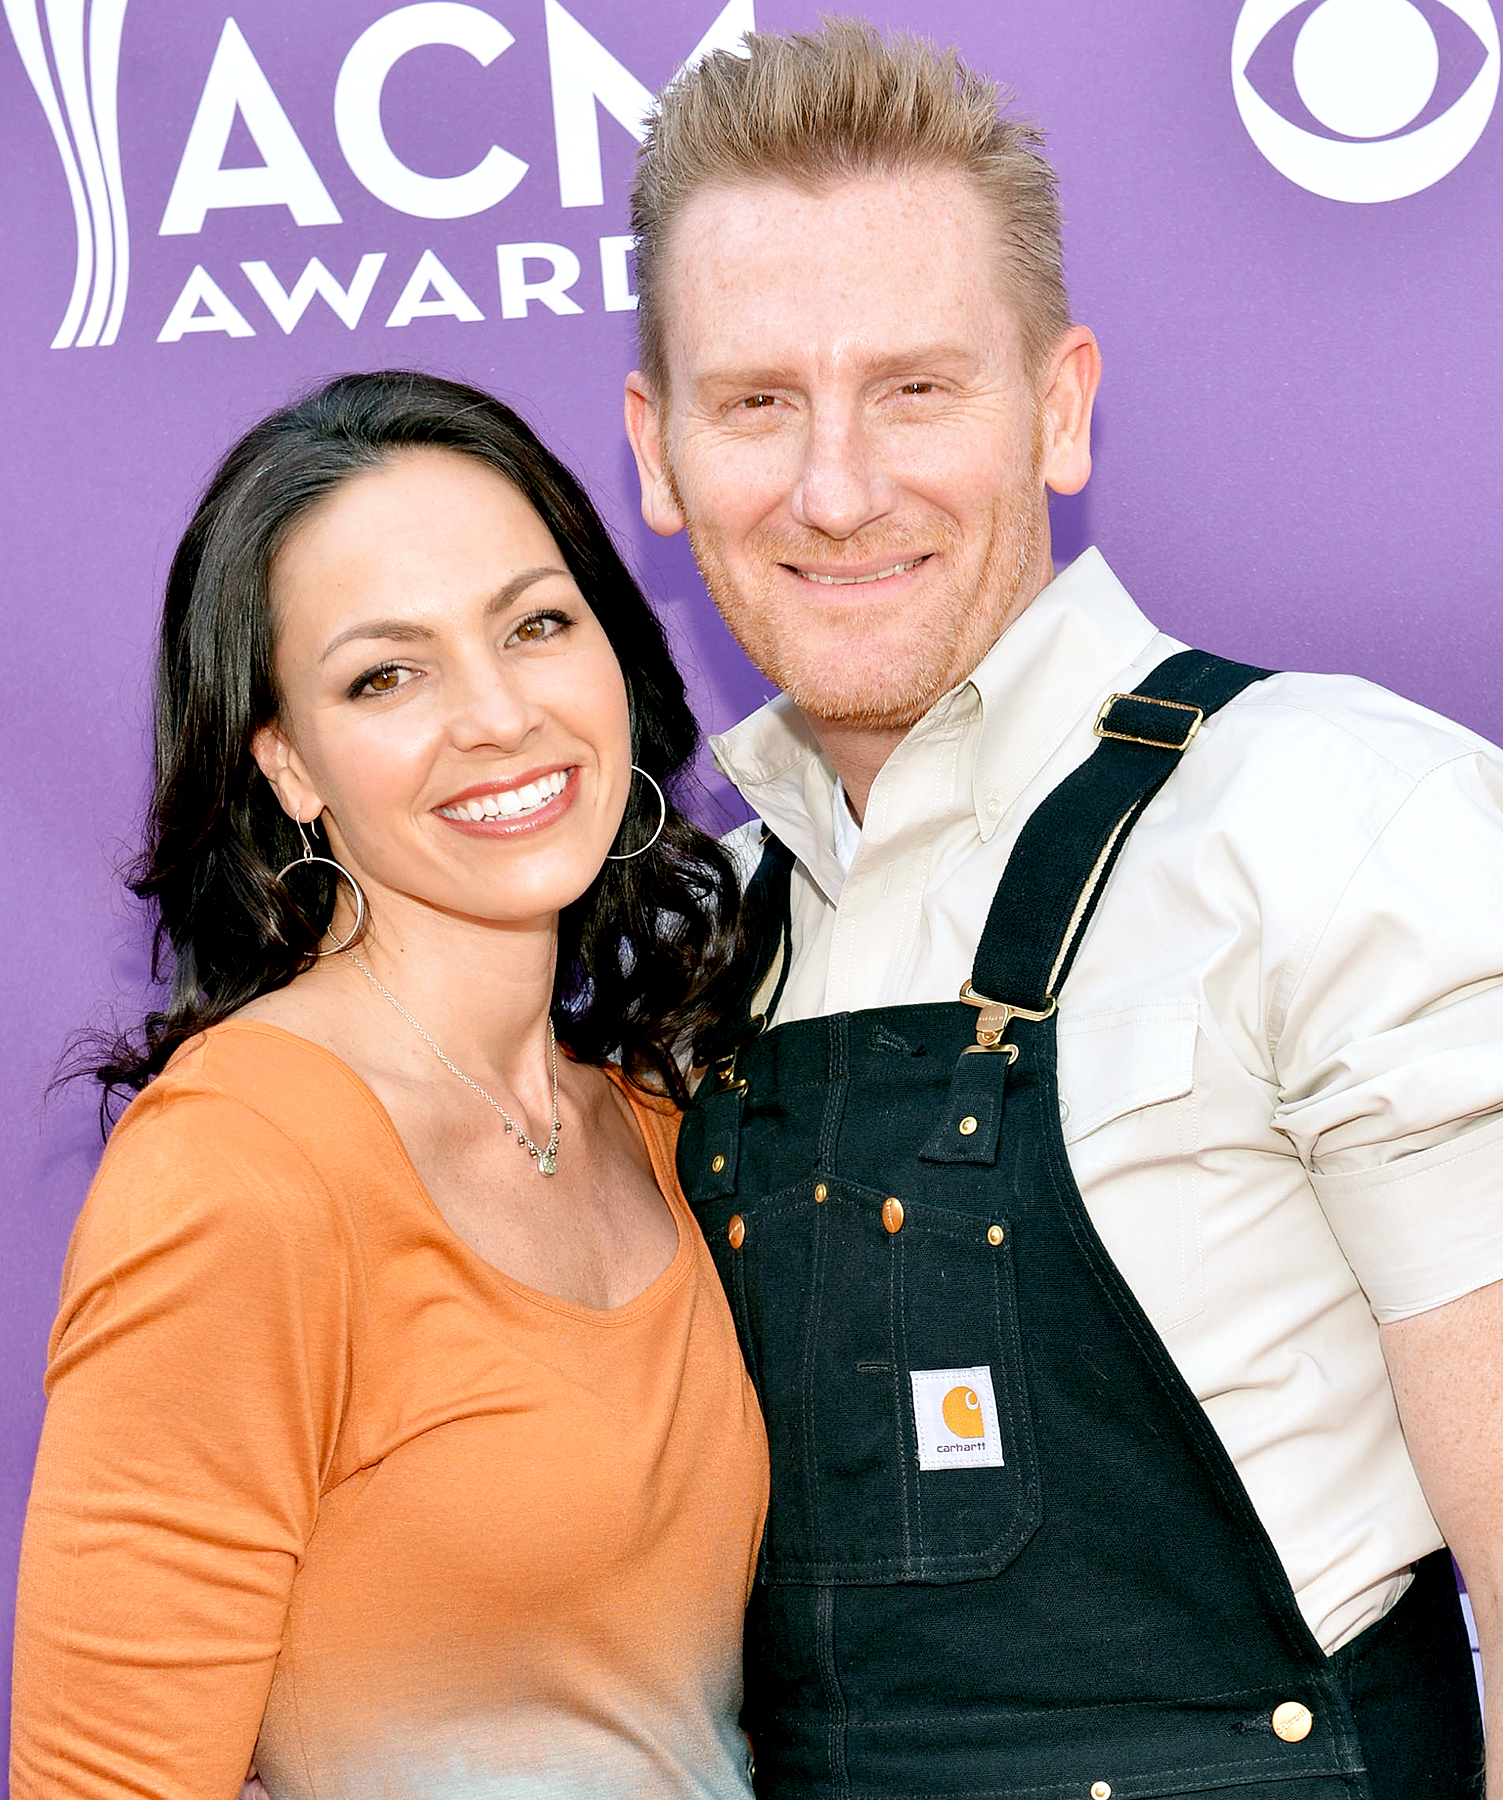 Joey Feek and Rory Feek of Joey & Rory attend the 48th Annual Academy of Country Music Awards at the MGM Grand Garden Arena on April 7, 2013, in Las Vegas.